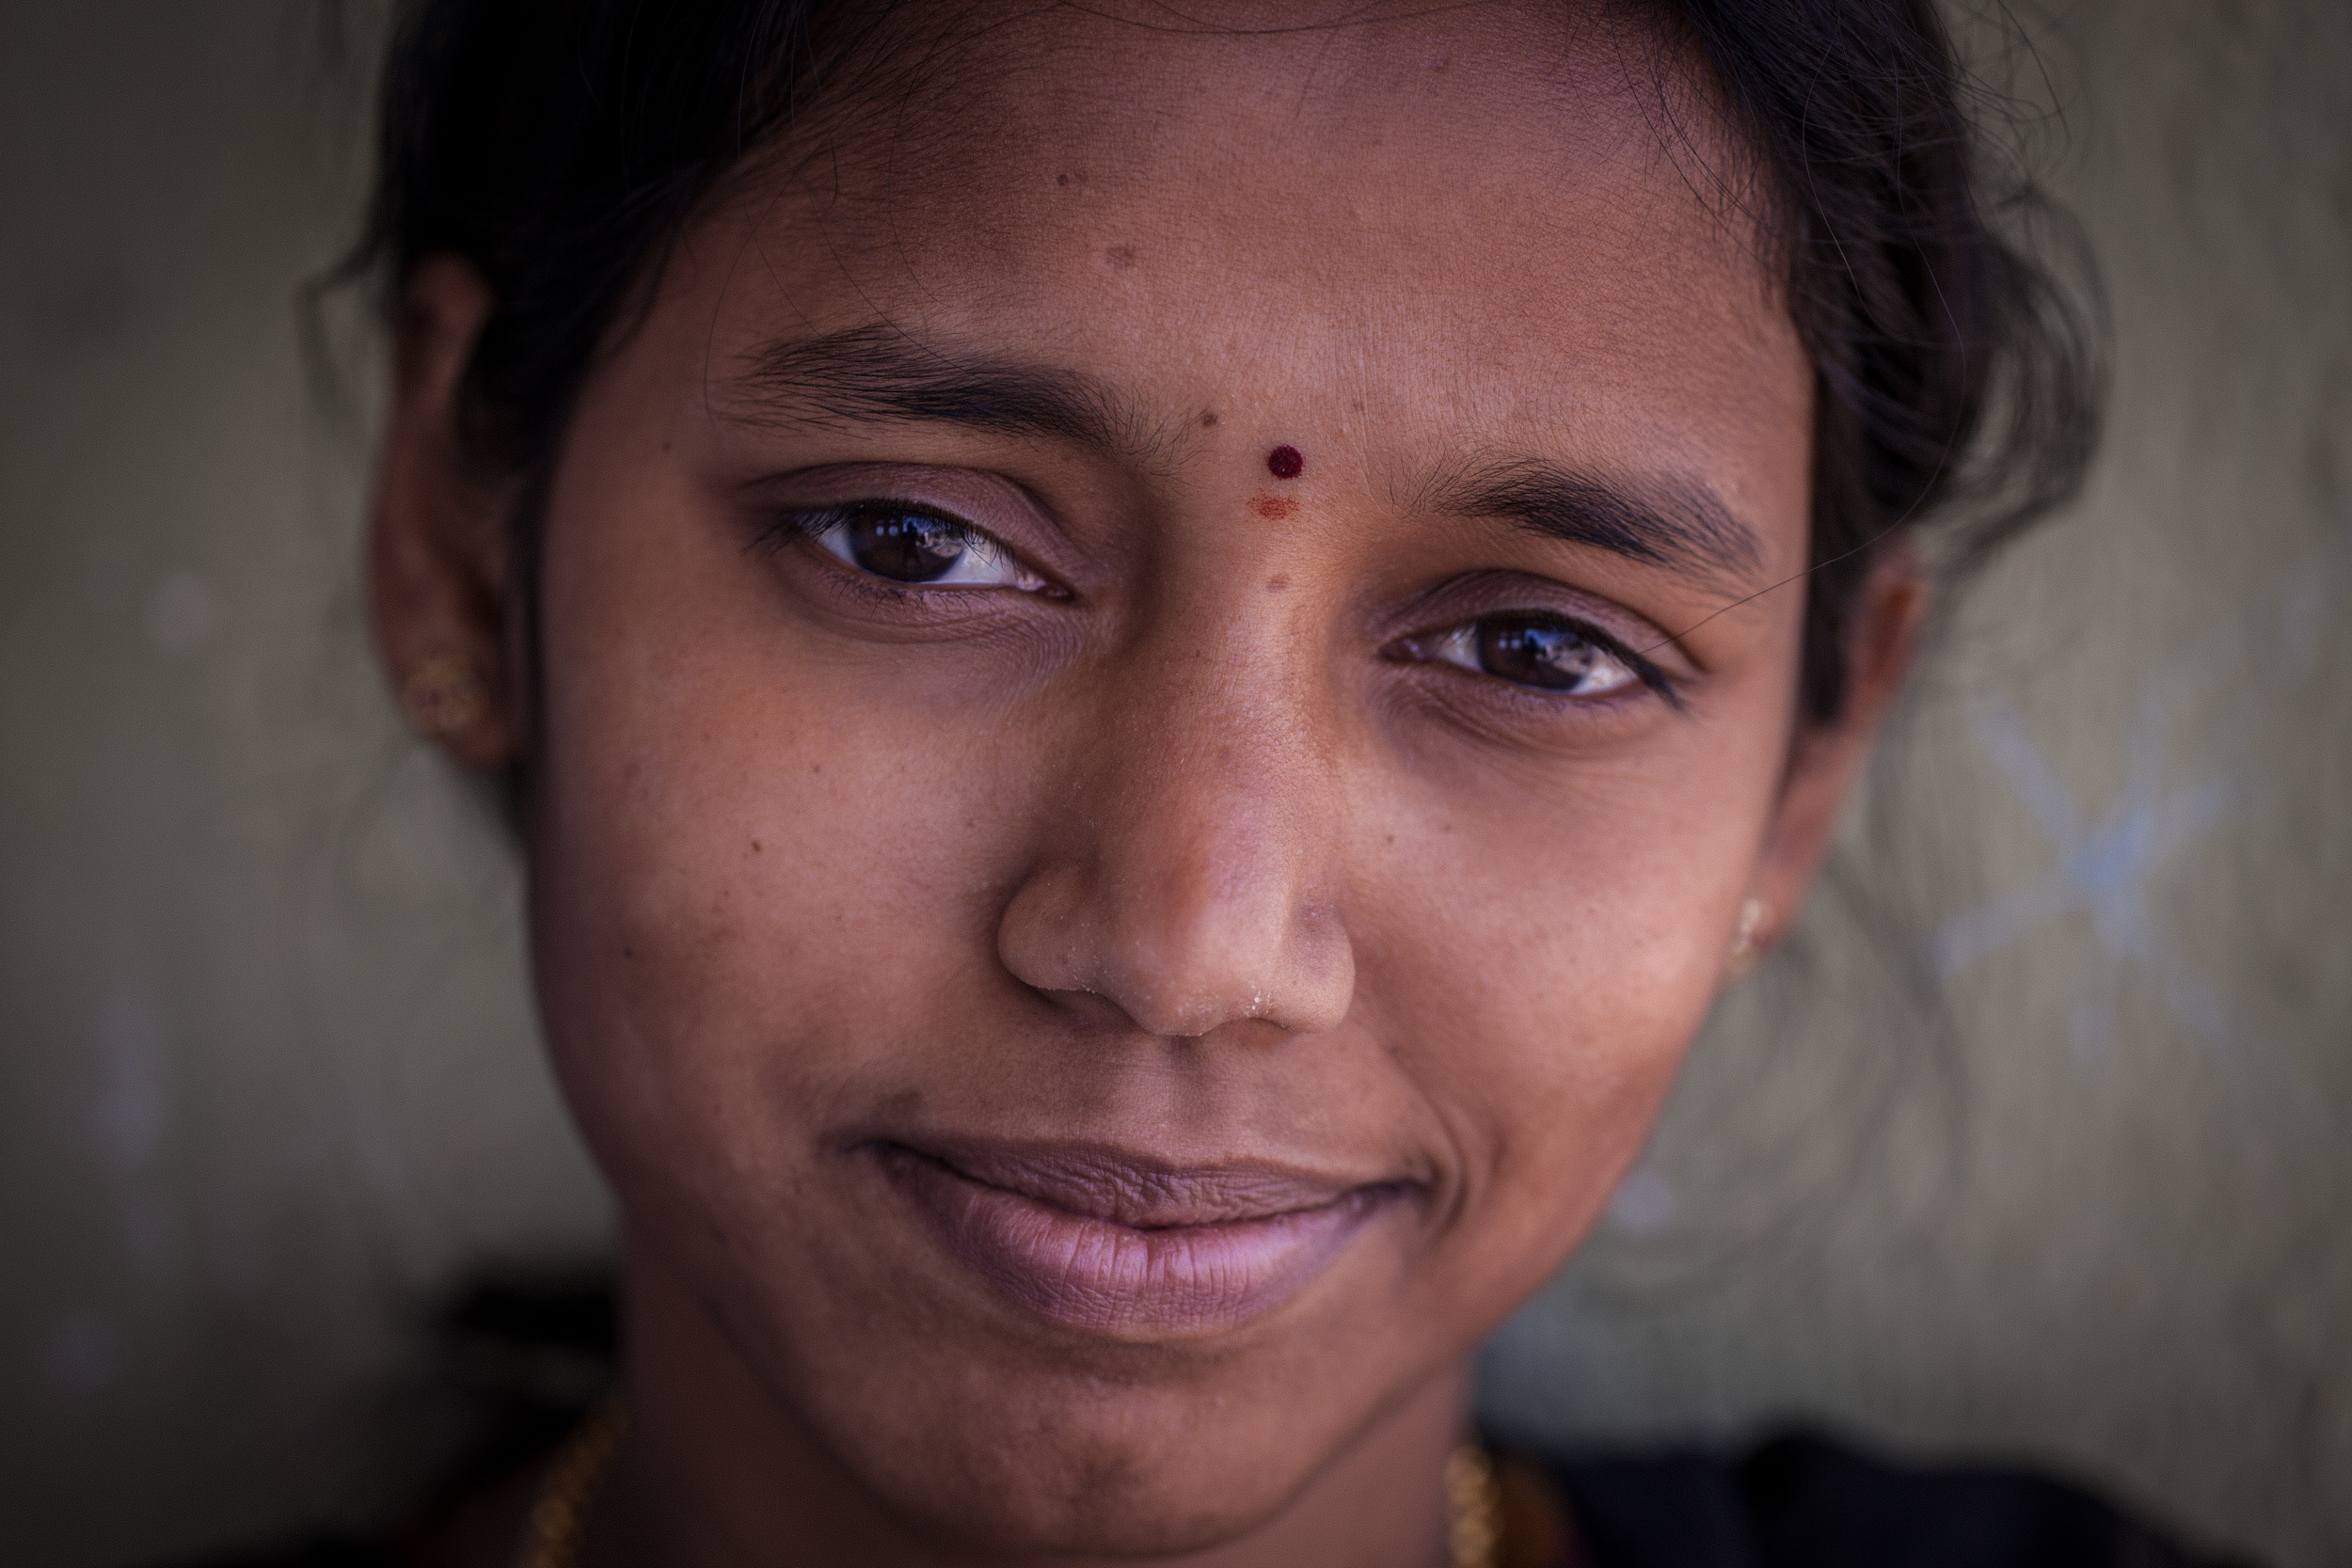 Educated, young woman, Bengaluru, India